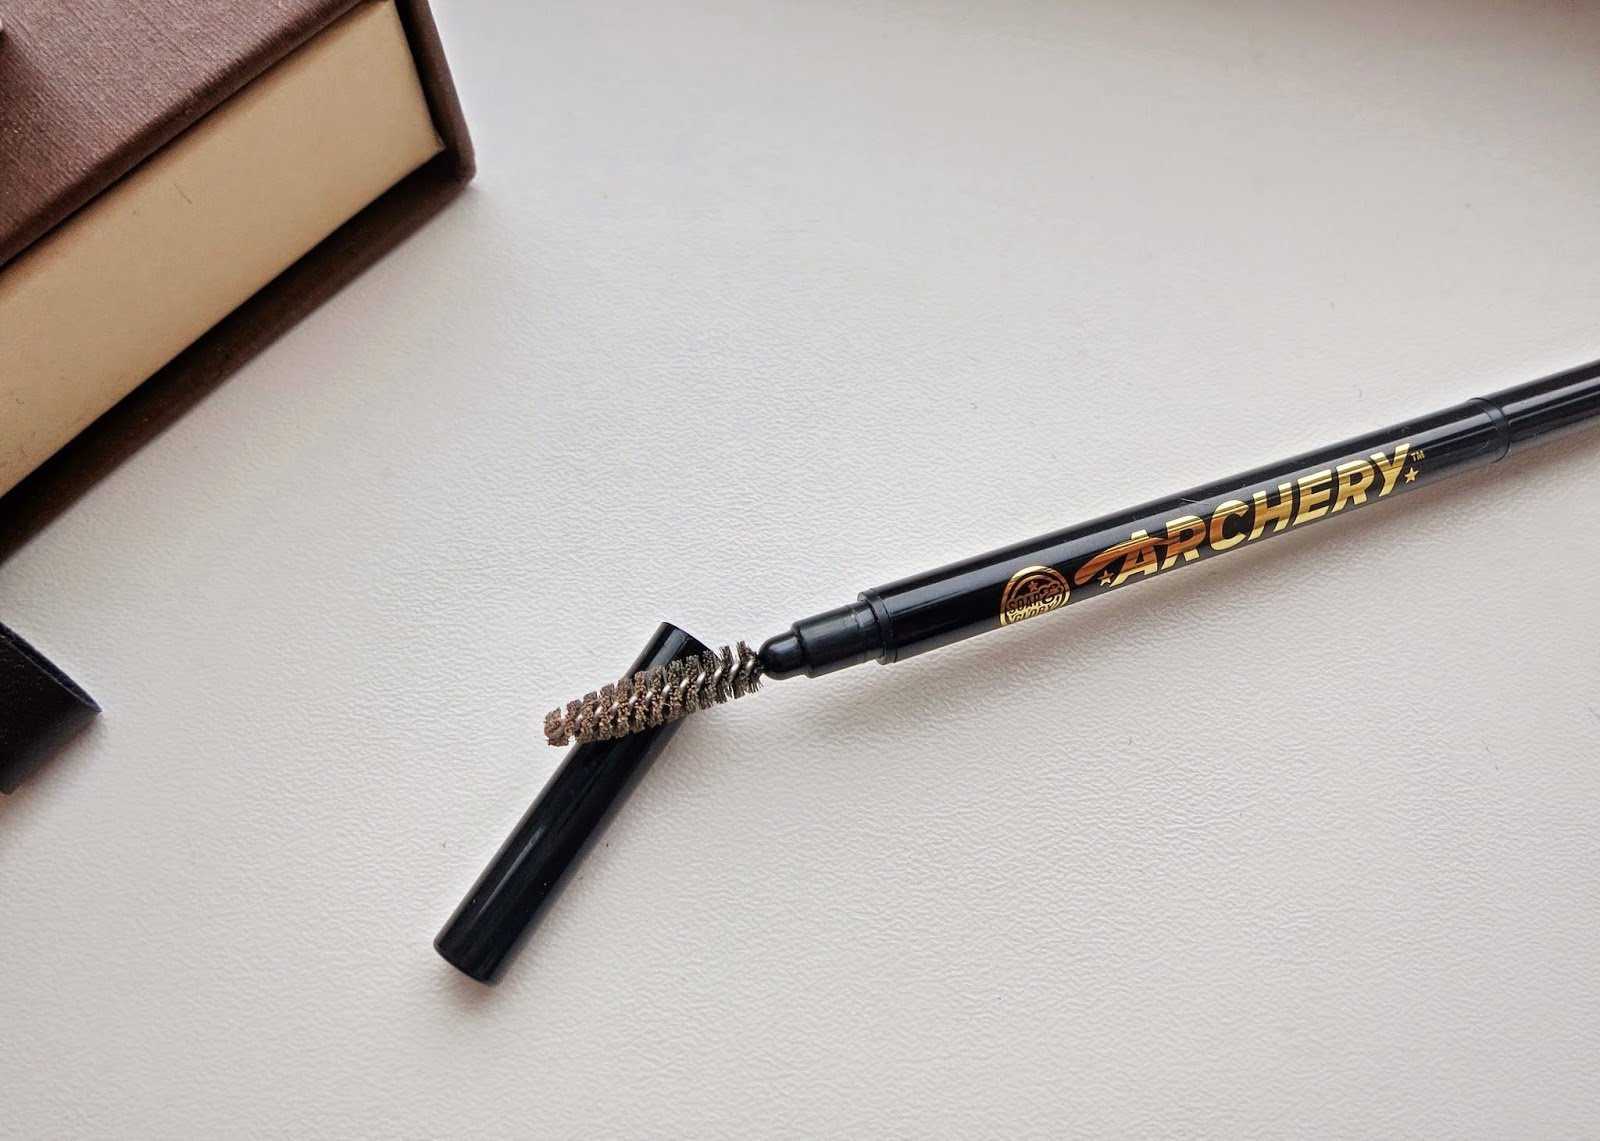 Soap & Glory Archery Eyebrow Pencil & Brush